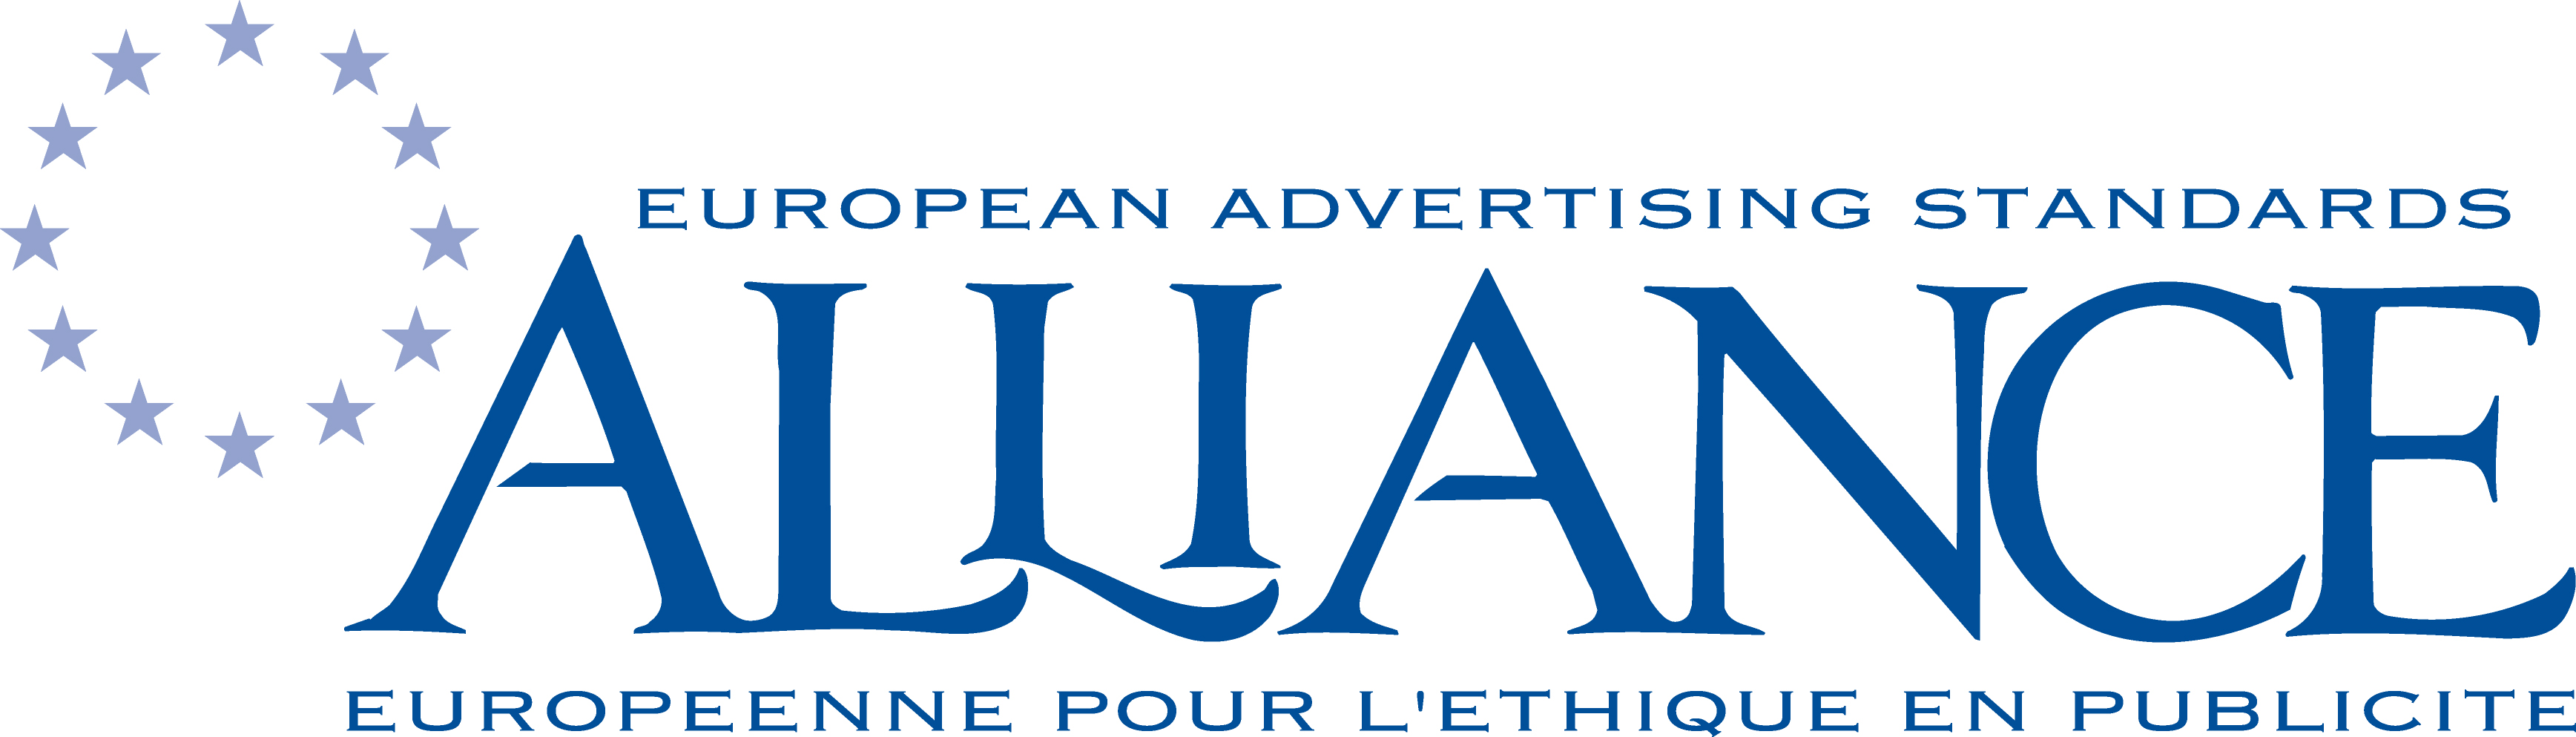 logo for European Advertising Standards Alliance